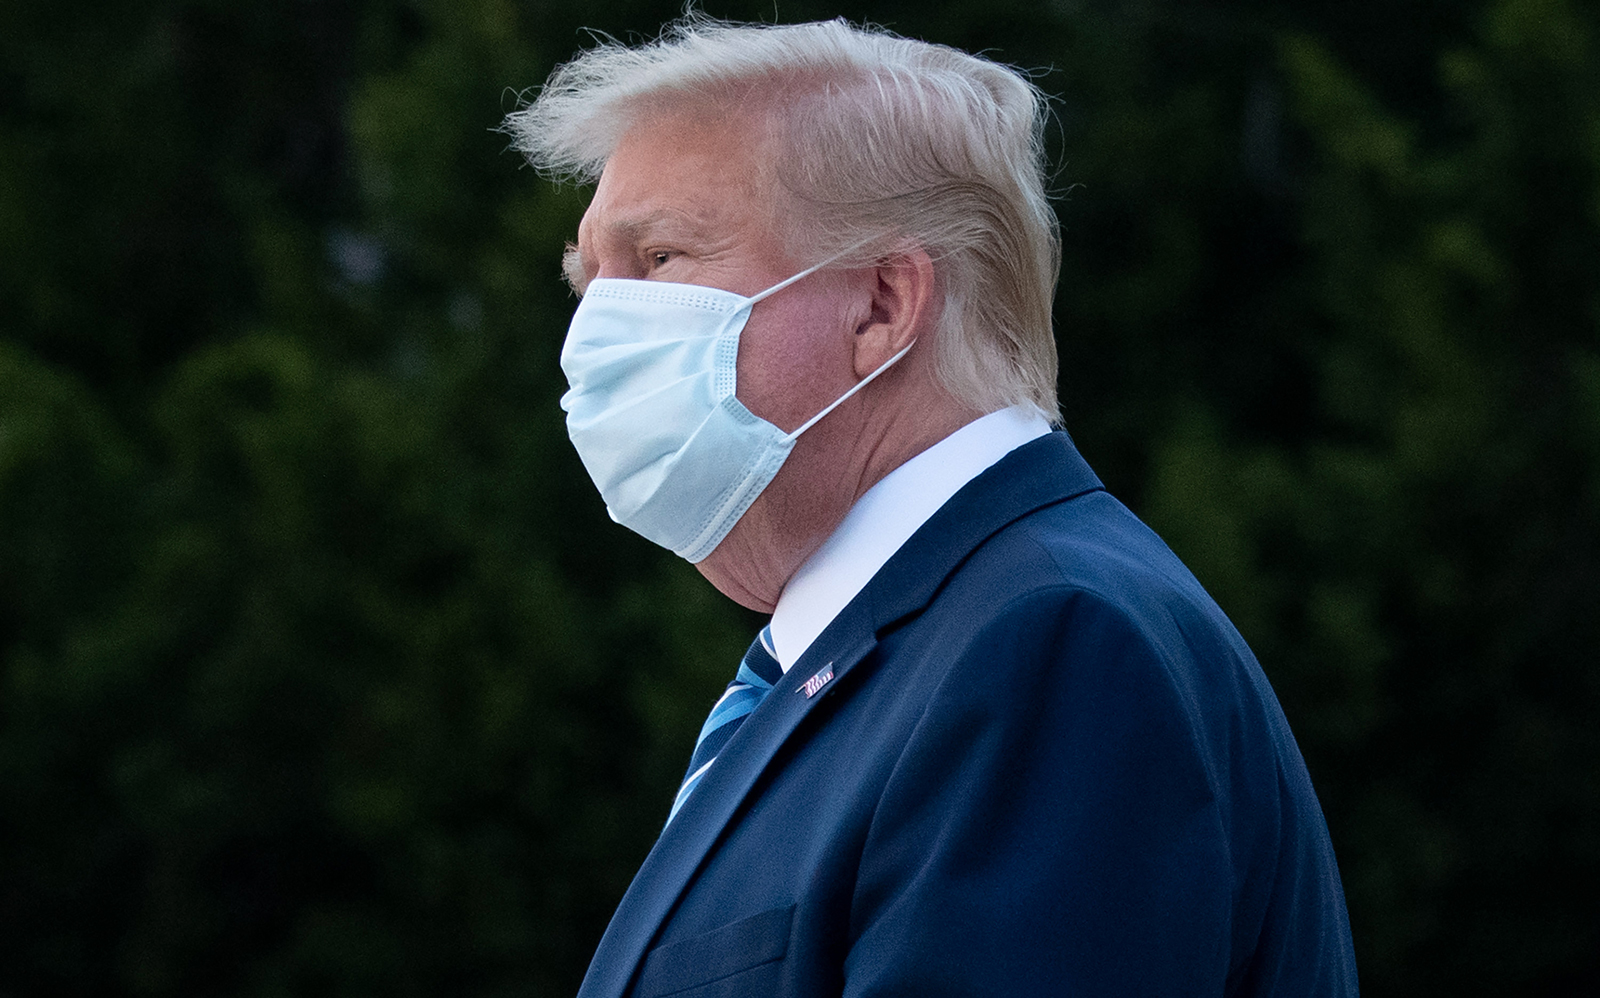 President Donald Trump wears a face mask as he leaves Walter Reed Medical Center in Bethesda, Maryland heading to Marine One, on October 5.